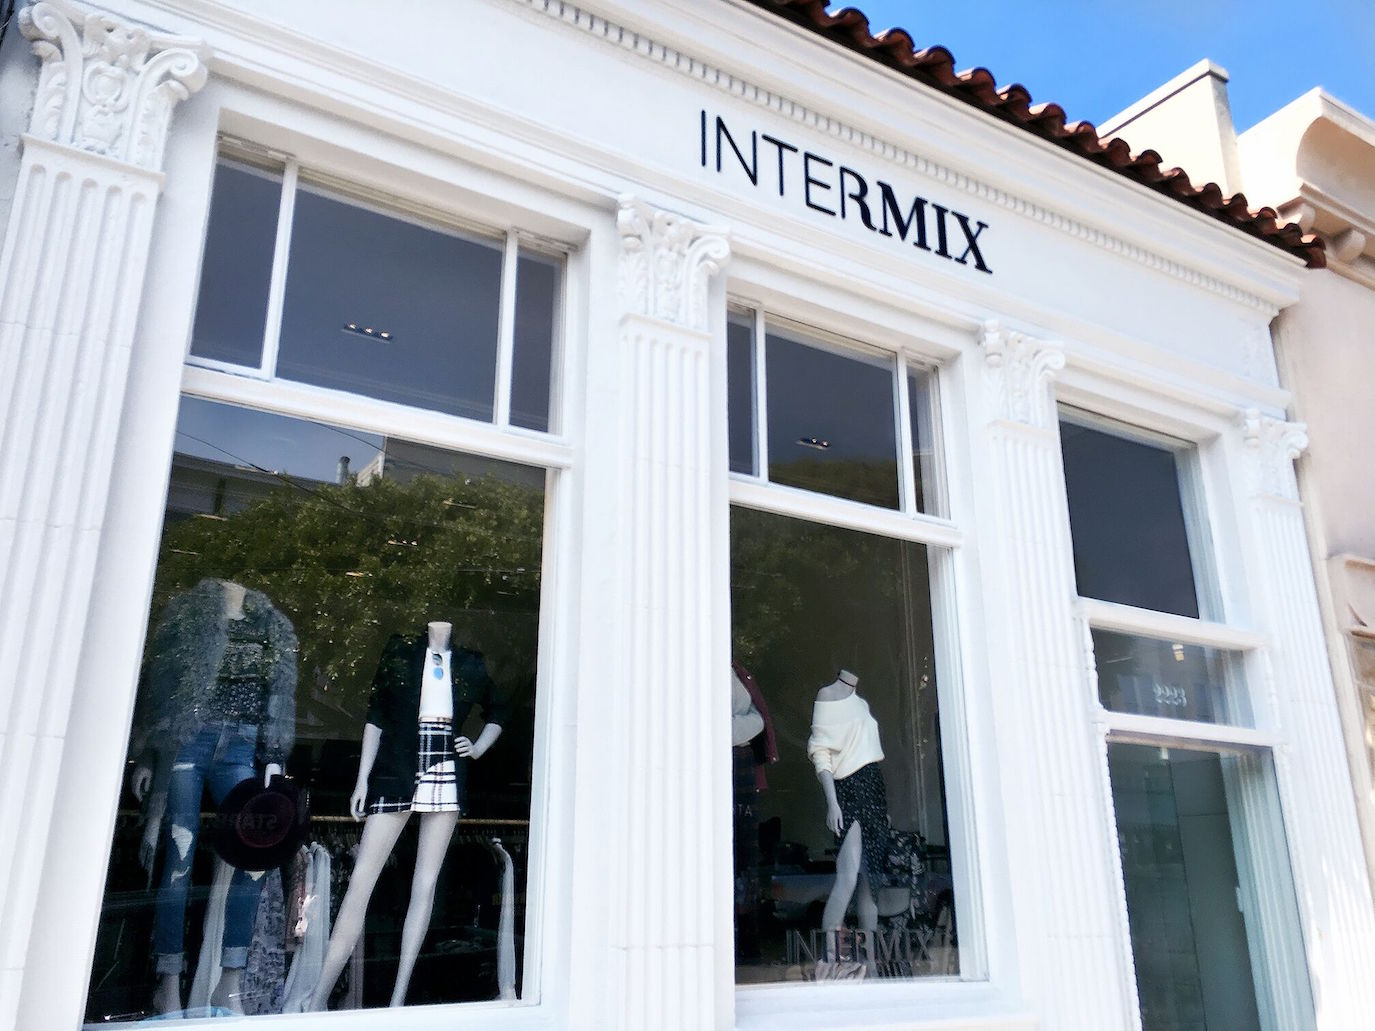 The storefront at Intermix